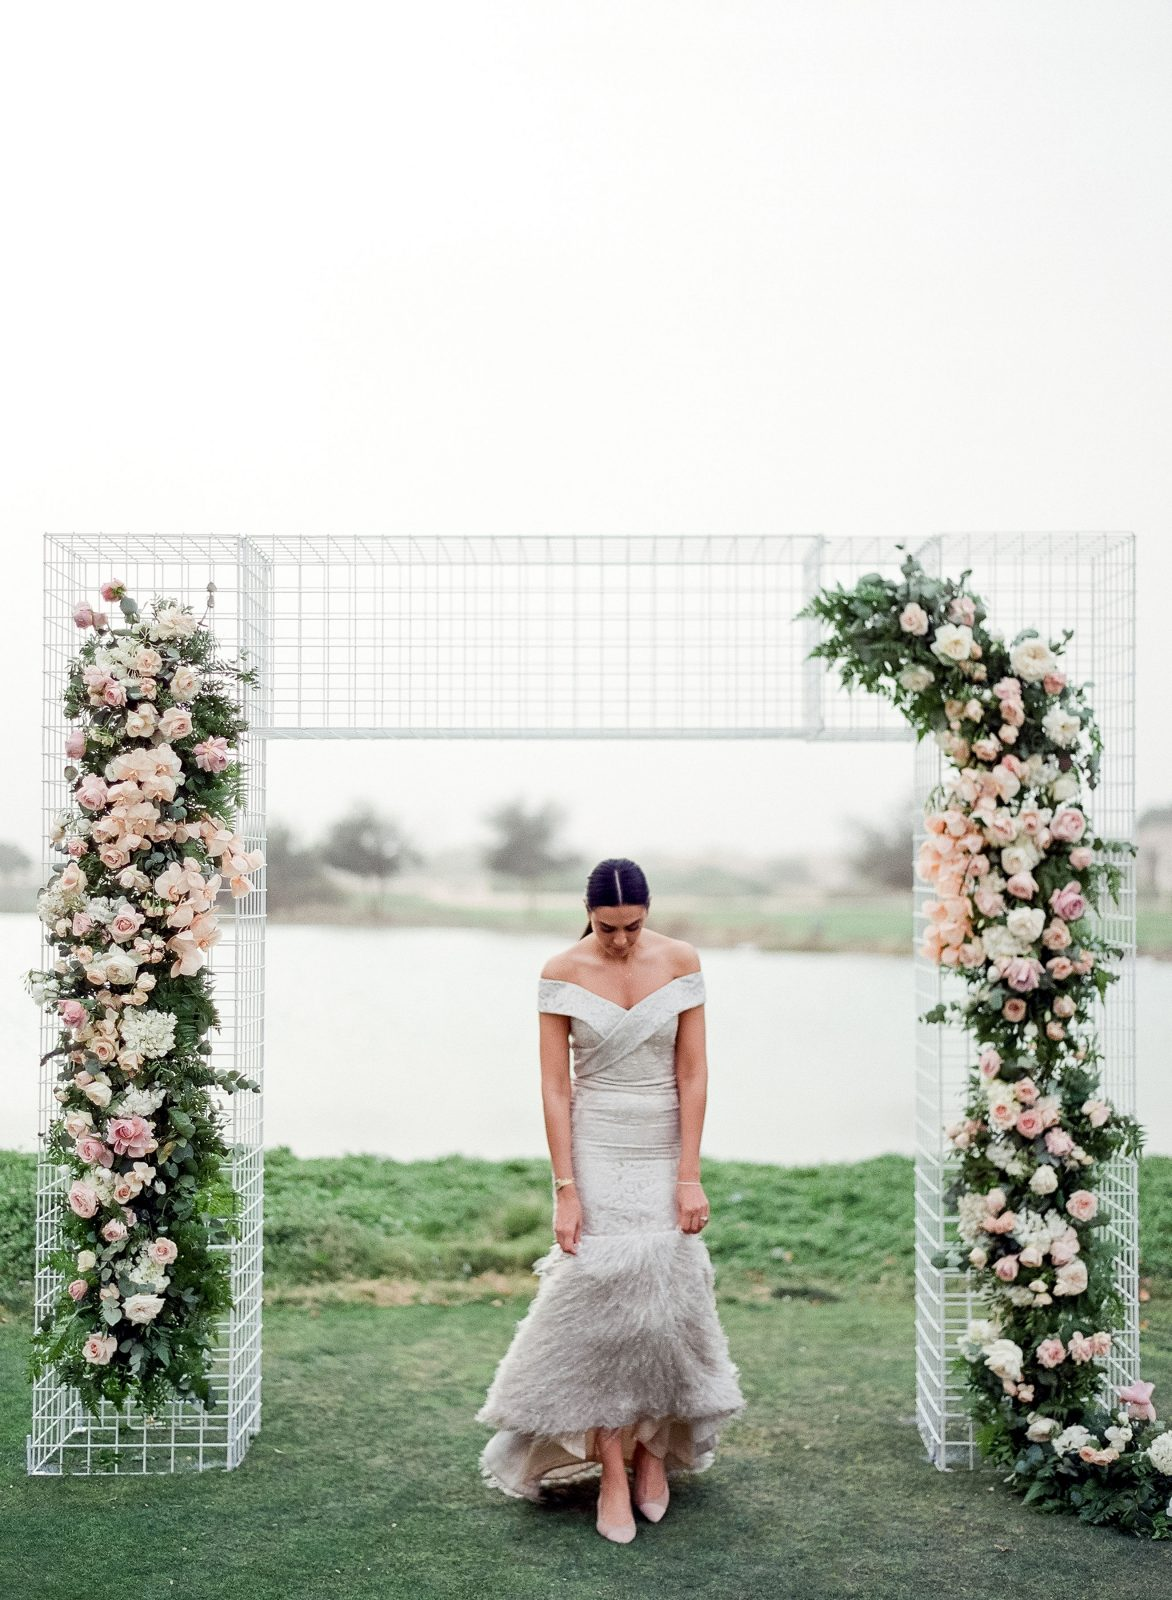 Bride and blessing arch inspiration